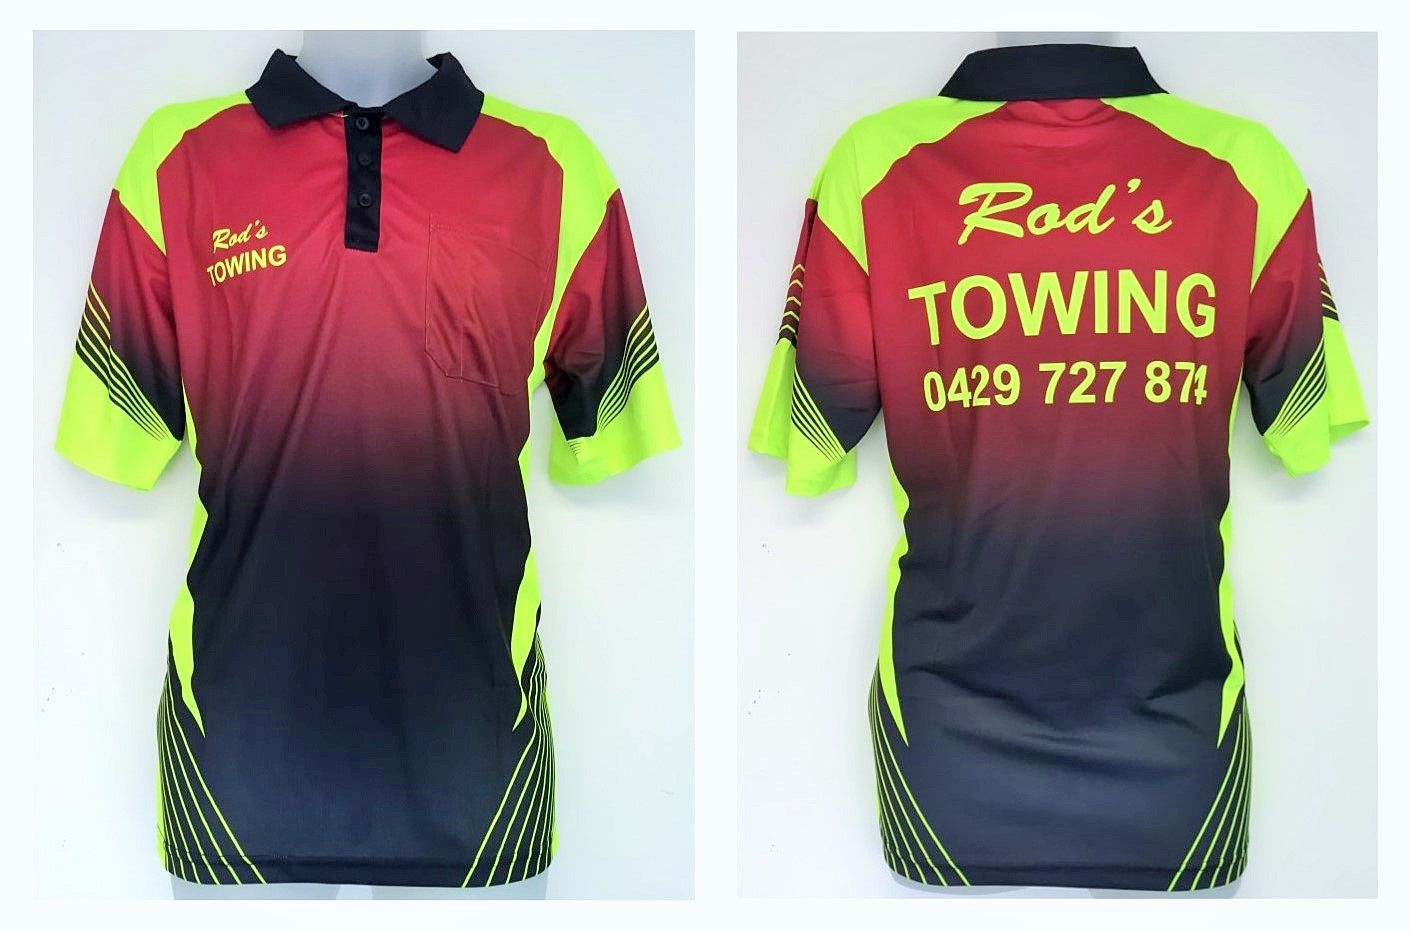 Polo shirt design your own - Here Is Another Simple Yet Bright And Effective Polo Shirt Designed For Rods Towing Visit